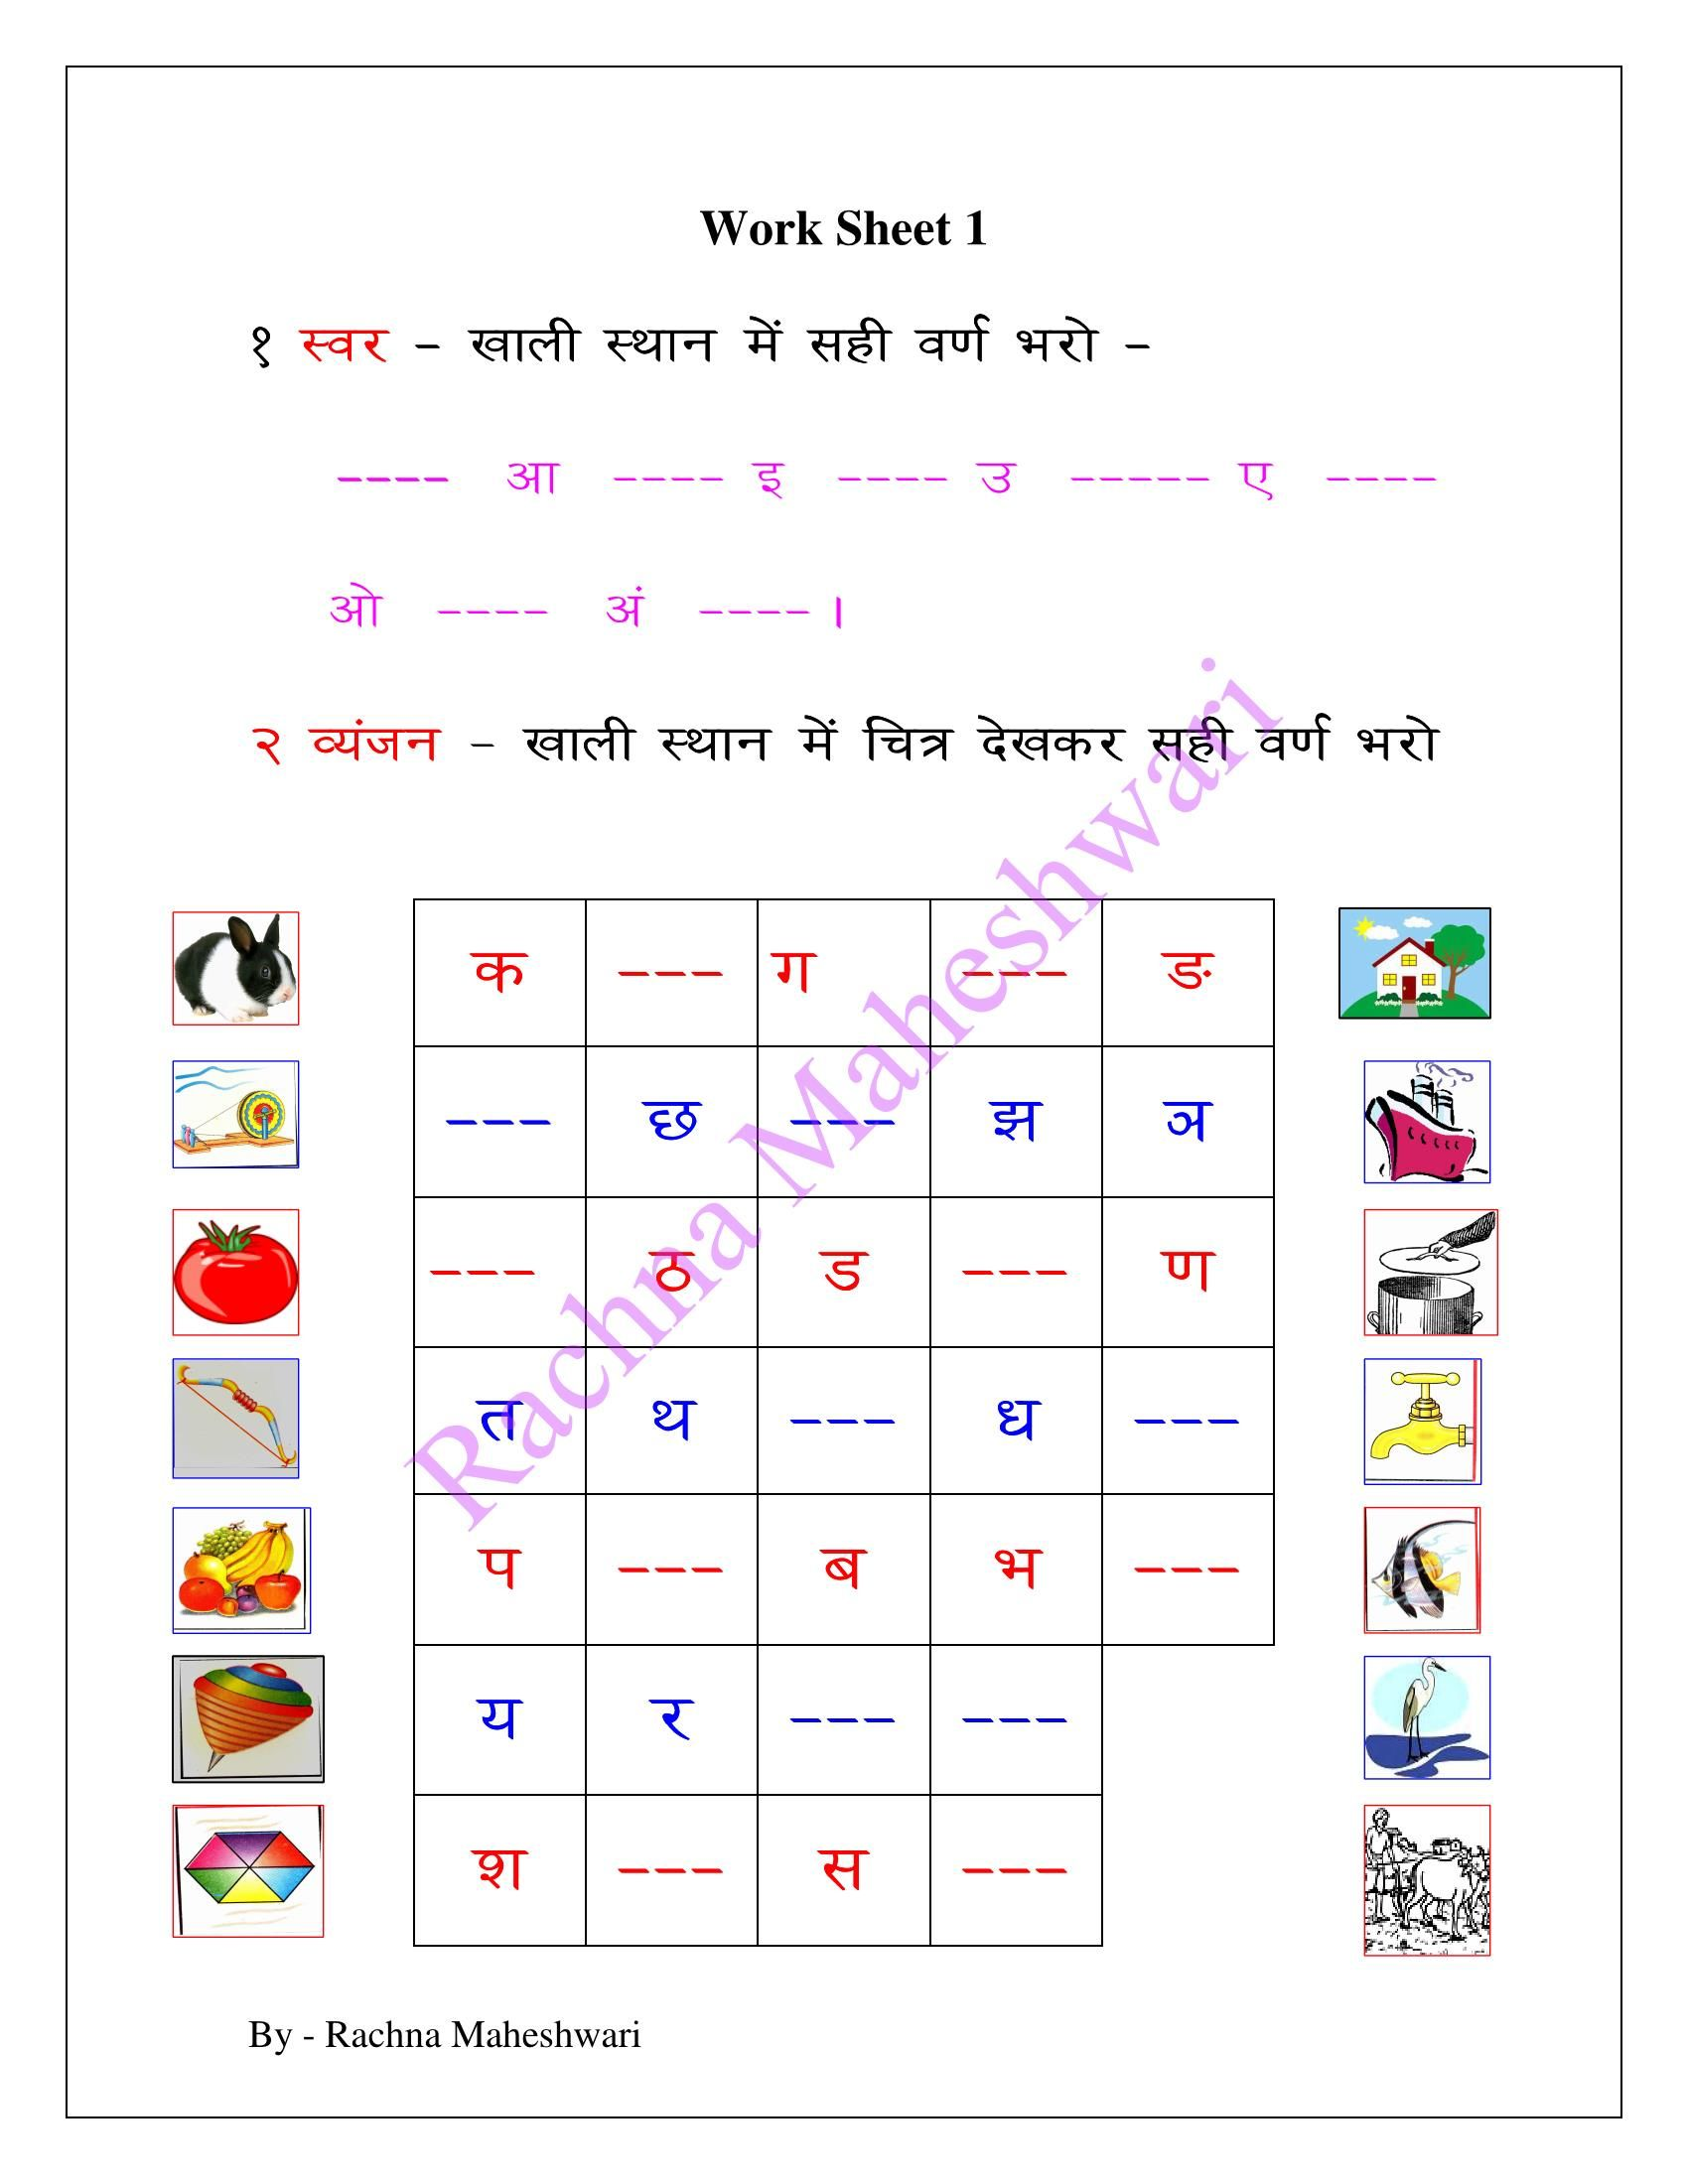 small resolution of स्वर व्यंजन (6 Work Sheets- Easy to follow)   Hindi worksheets